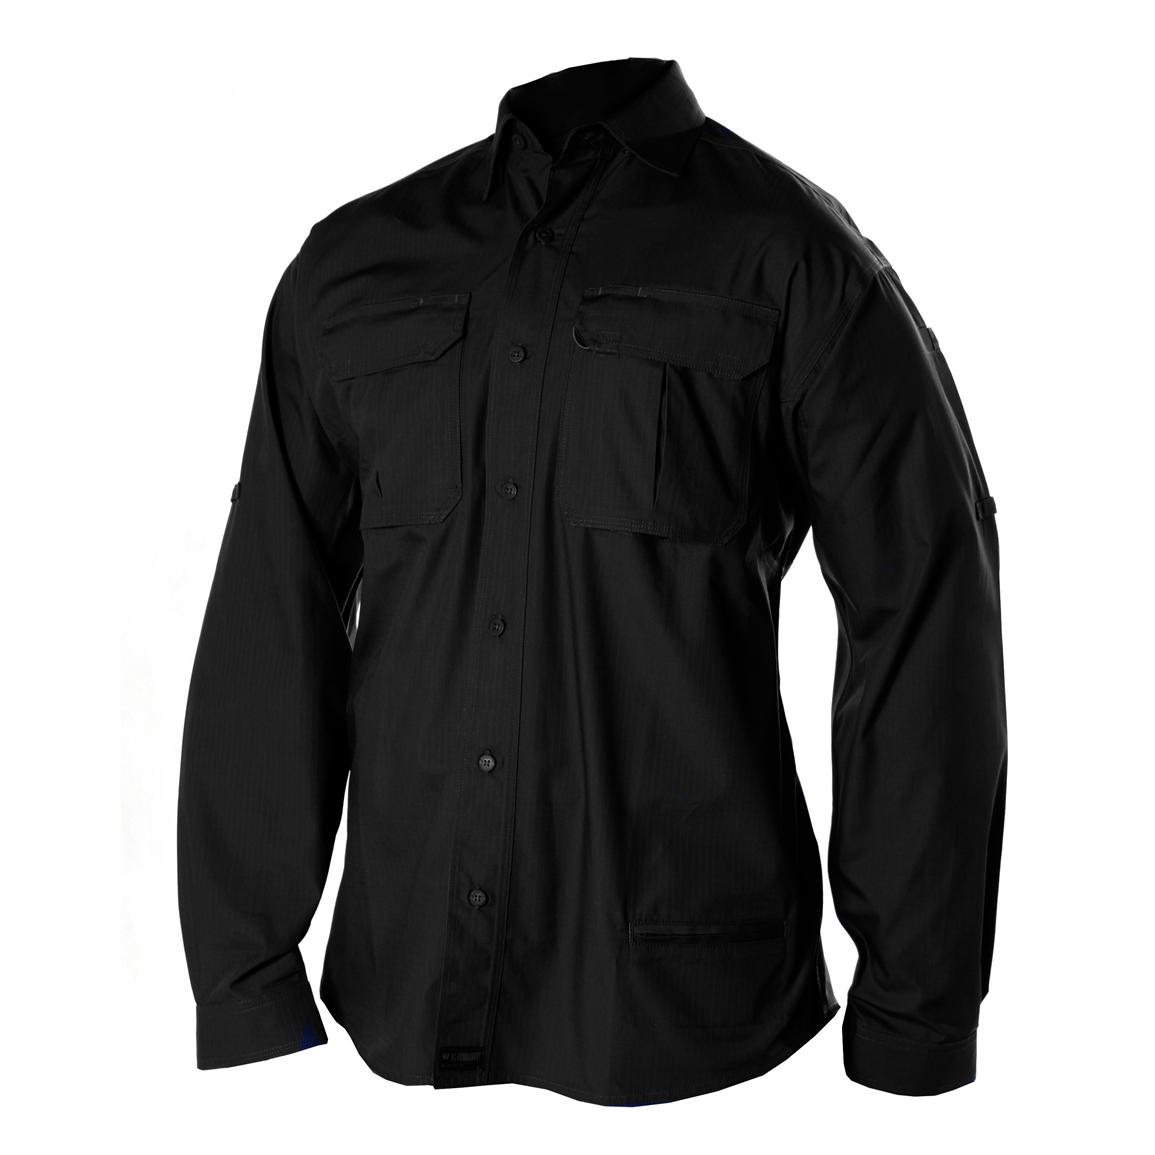 BLACKHAWK!® Warrior Wear™ Tactical Shirt, Black